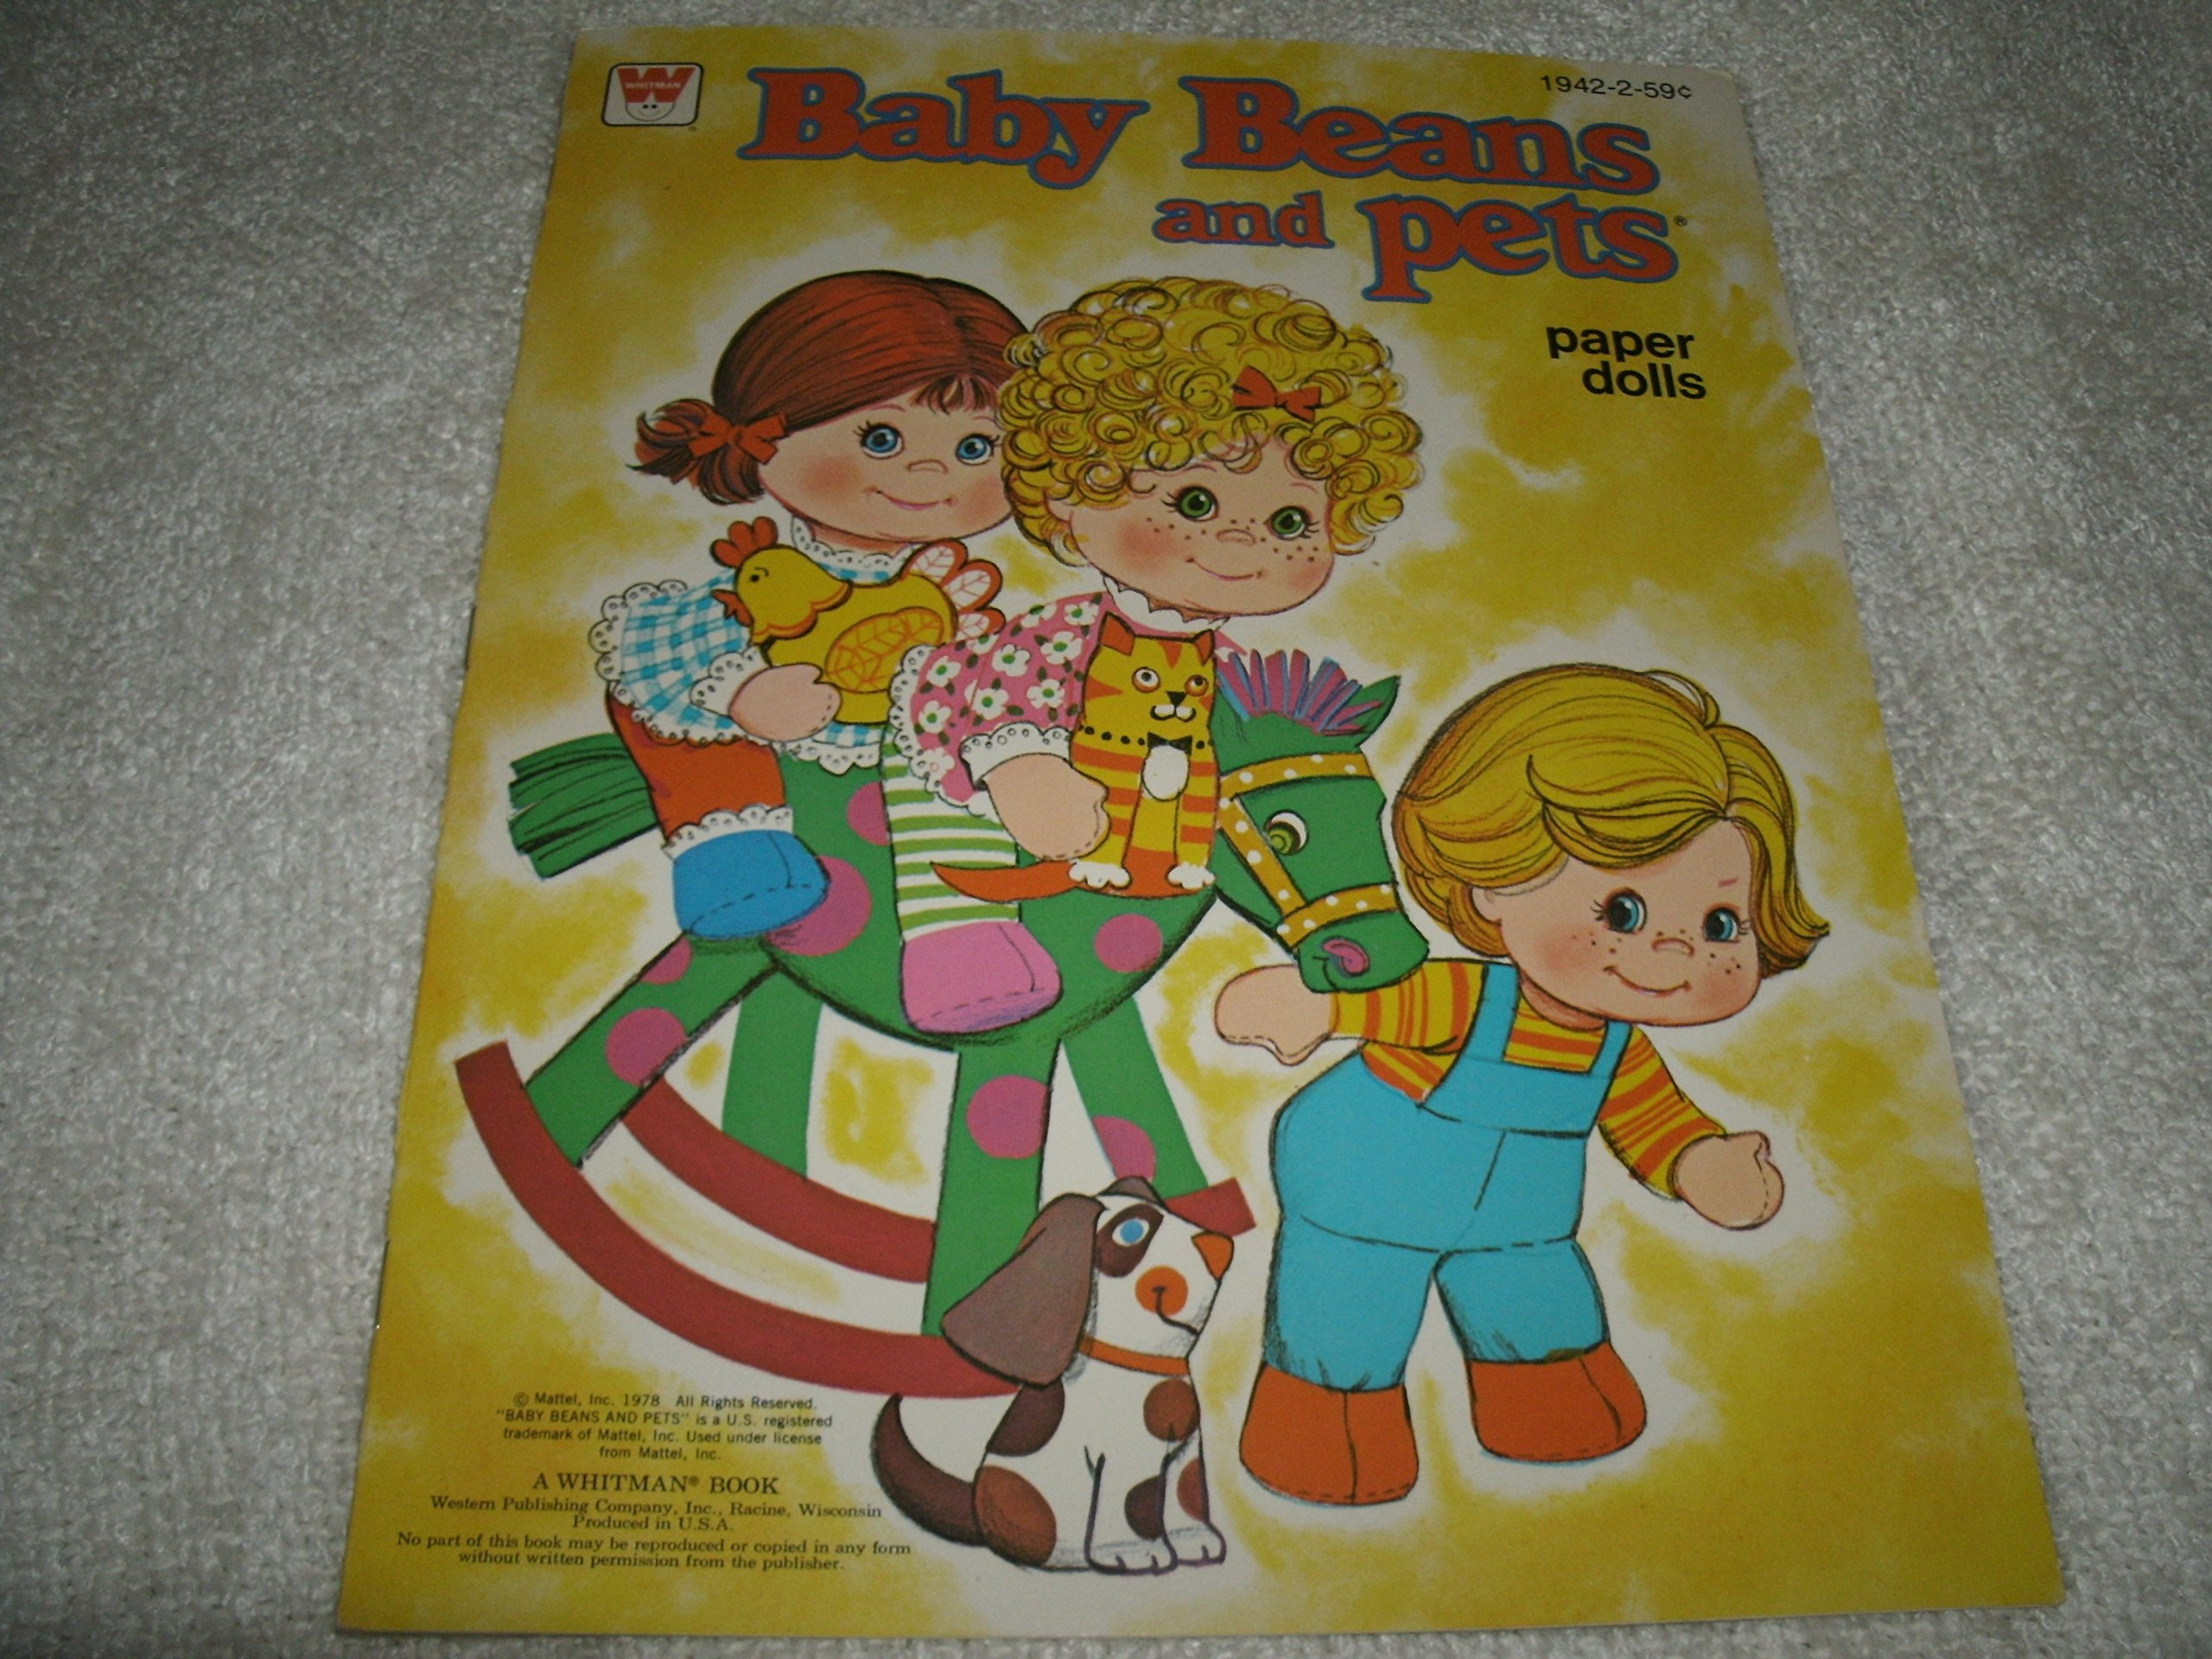 Mattel 1978 Baby BeansとペットPaper Dolls by Mattel (Image #1)